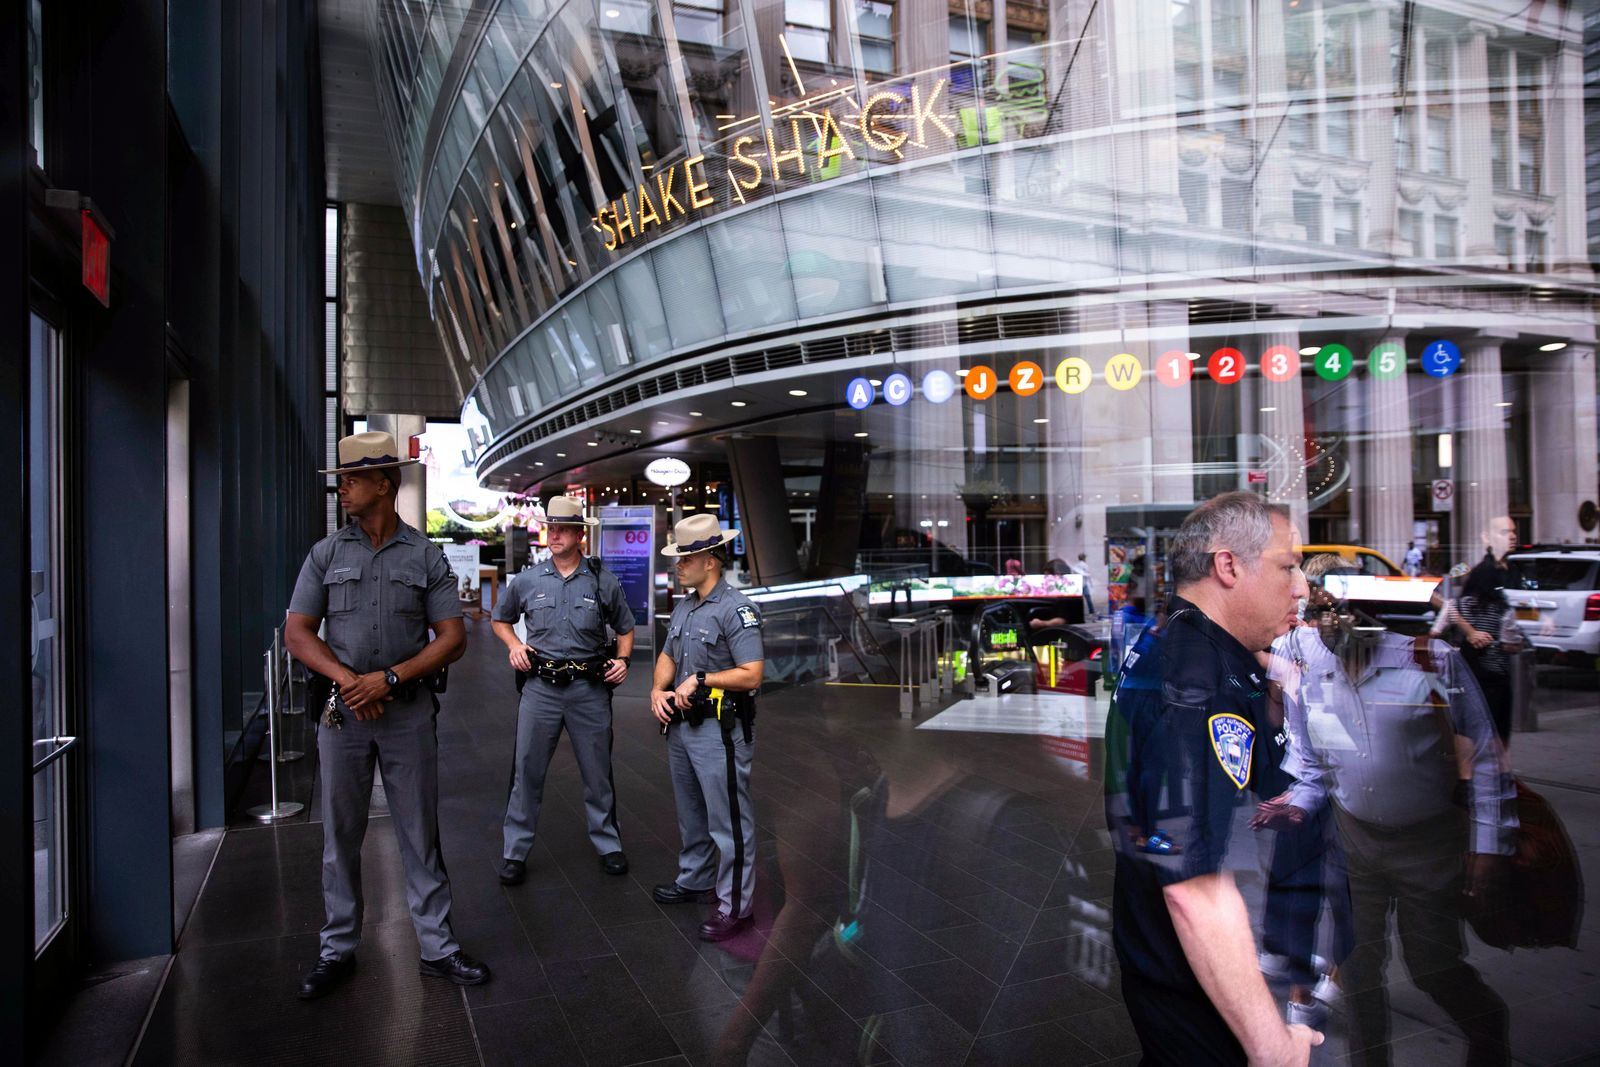 Law enforcement officers gather inside Fulton Street Station after suspicious device was reported Friday, August 16, 2019, in New York.{ } (AP Photo/Kevin Hagen).